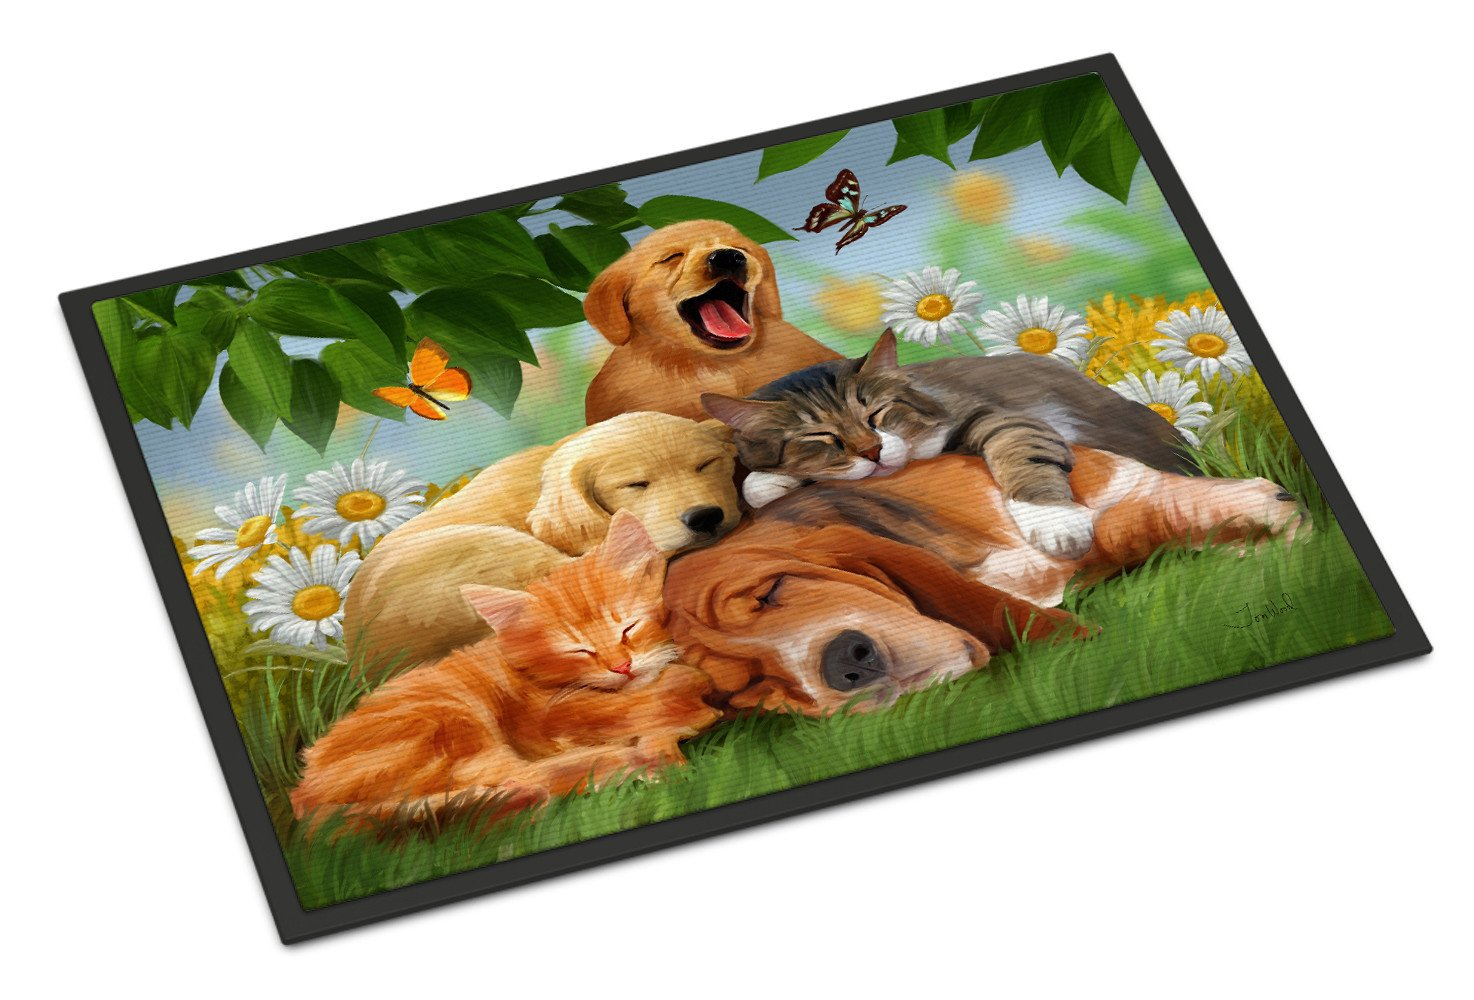 Golden Retriever, Labrador and Basset Hound Sleepy Heads Indoor or Outdoor Mat 18x27 PTW2049MAT - the-store.com